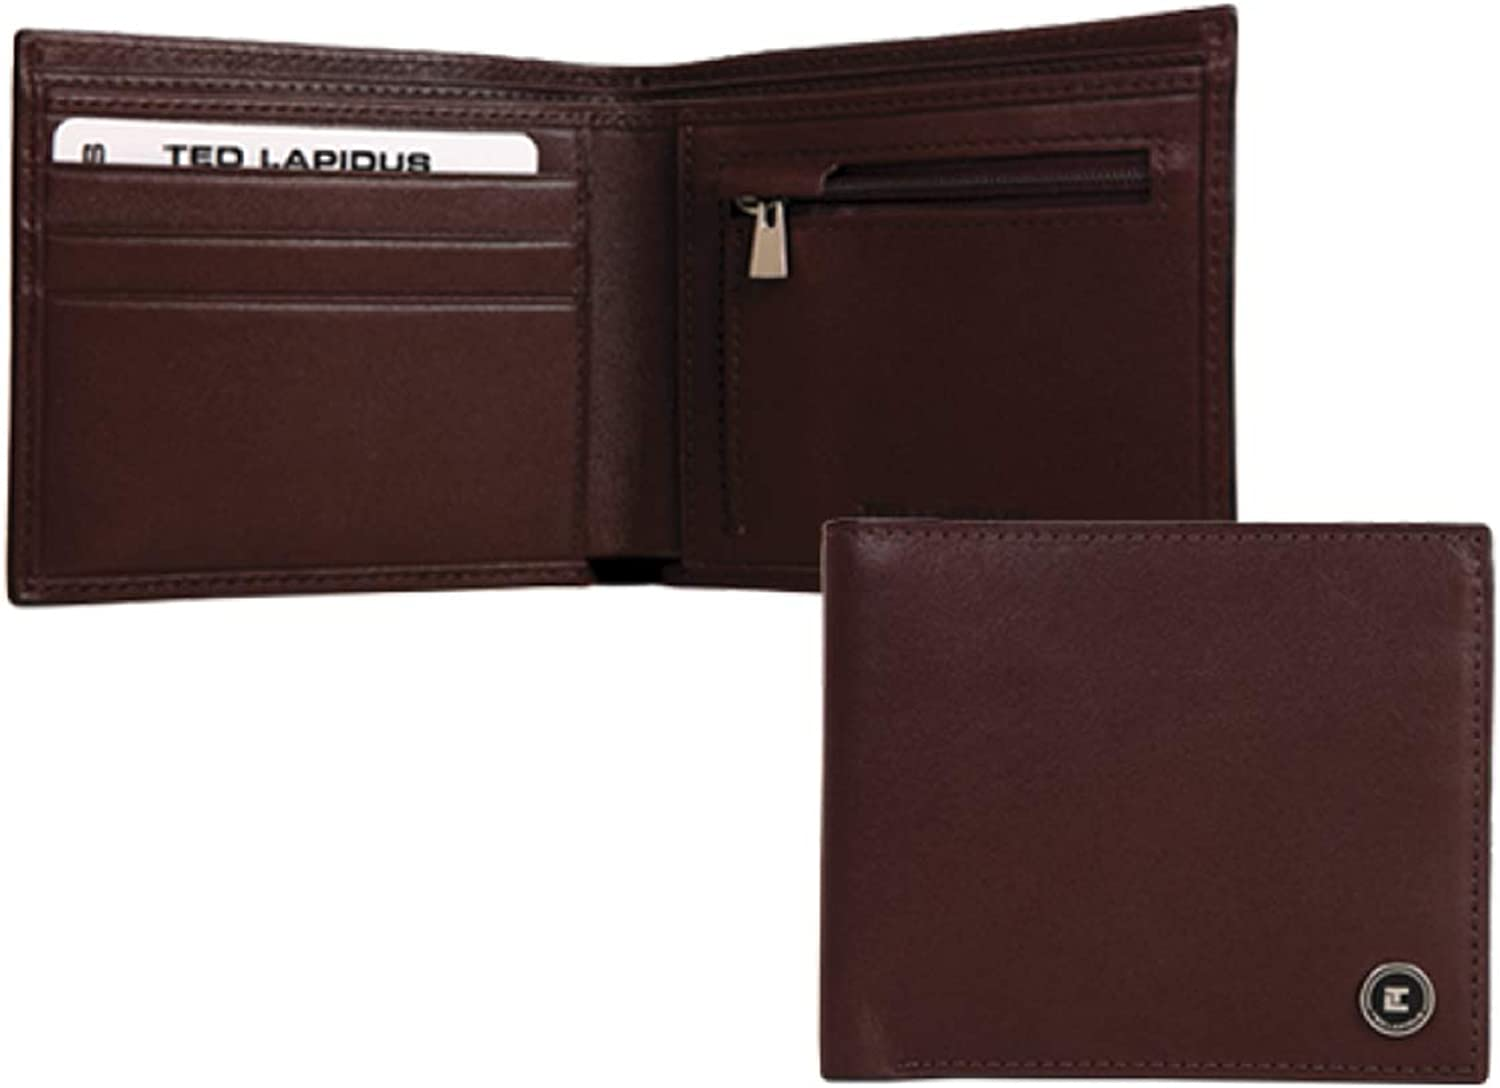 Wallet italian 'Ted Lapidus' brown.